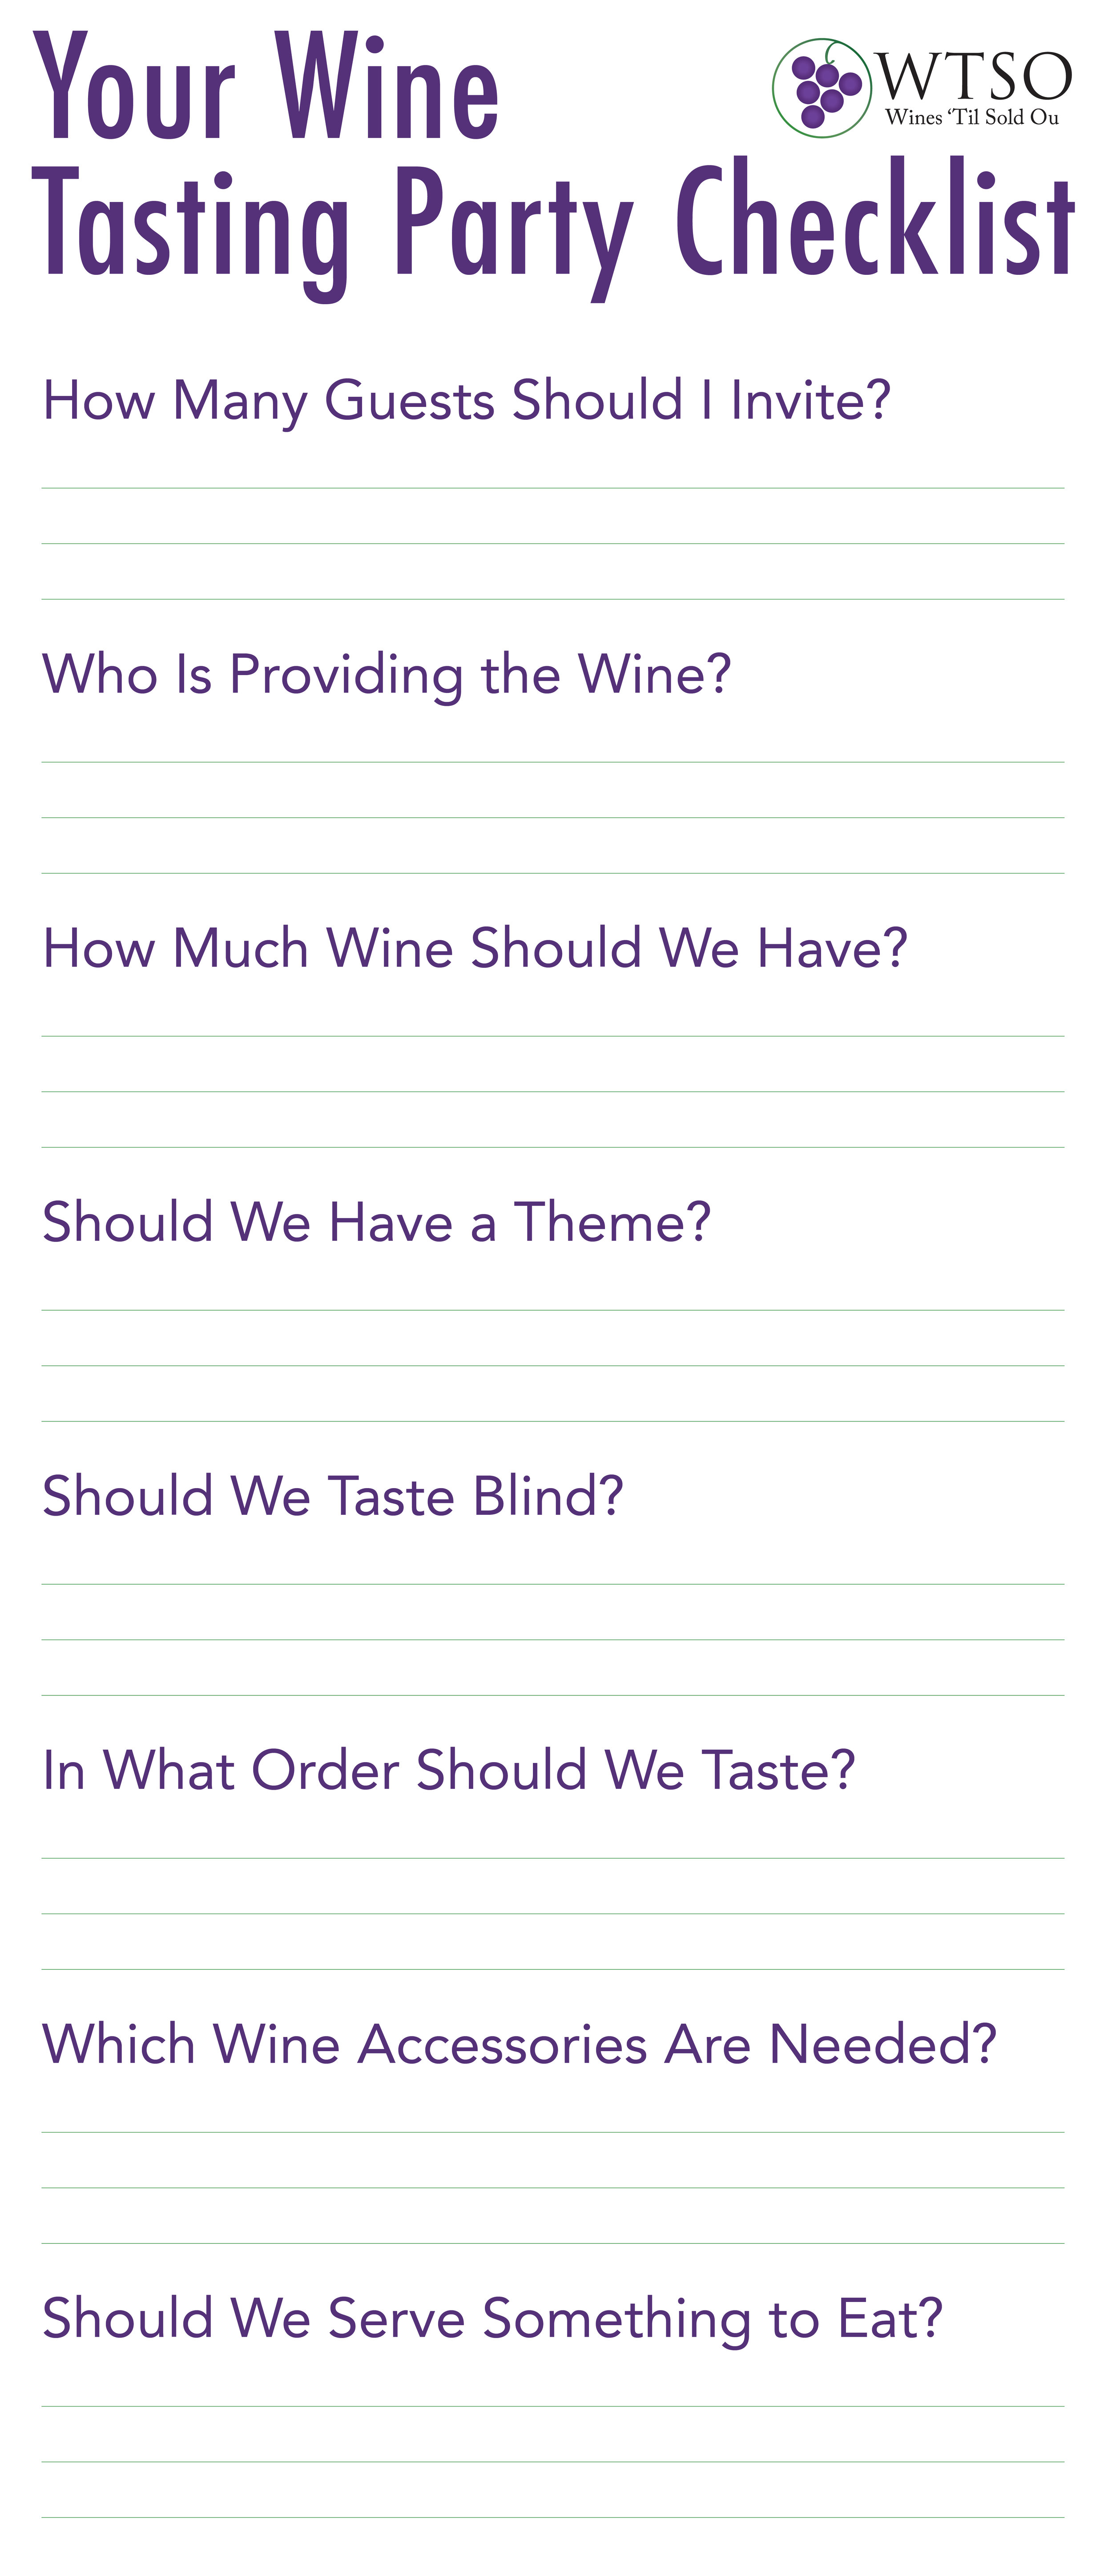 How To Host A Wine Tasting Party | From The Vine